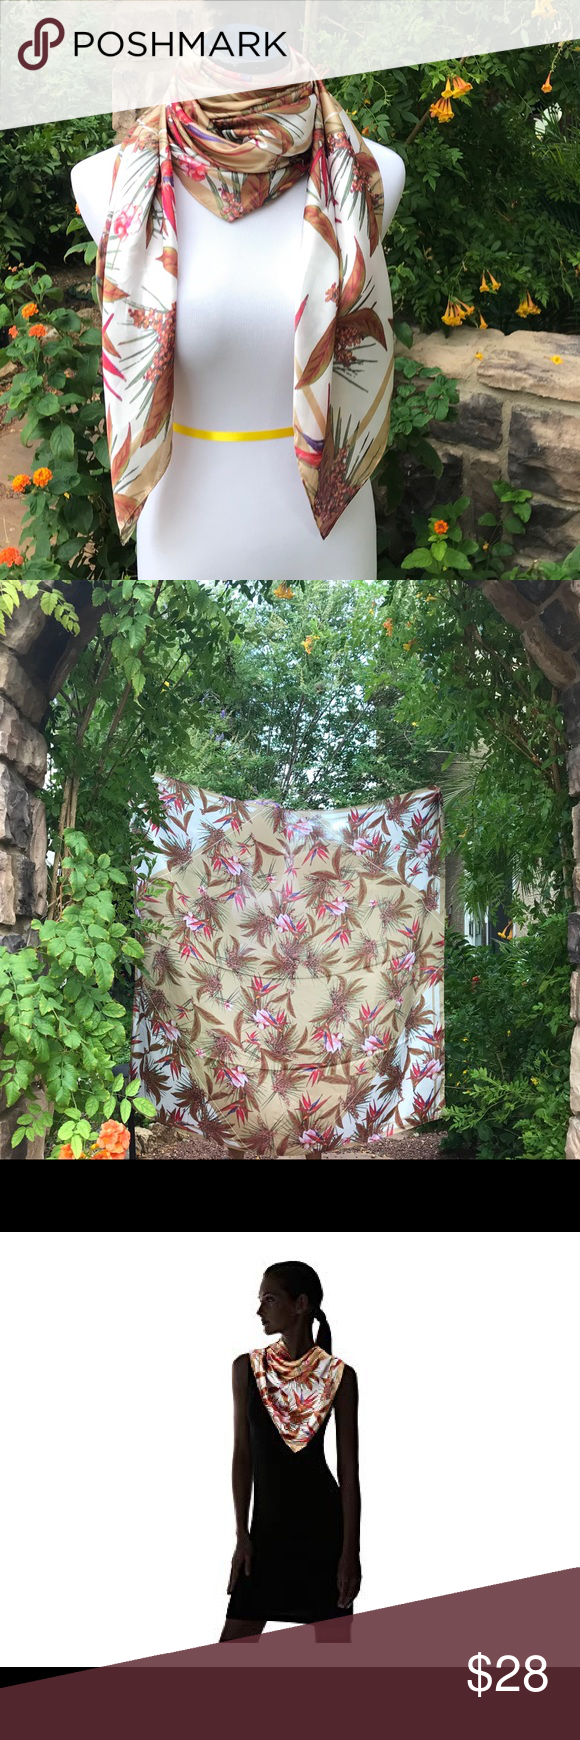 "Vince Camuto Tropic heat wave Scarf Beautiful earth tones tans and white with amazing birds of paradise.pinks, purples,red and goldish tan. Square Scarf features tropical Pattern OverSized. 48"" width 50"" length border stripe along edges"